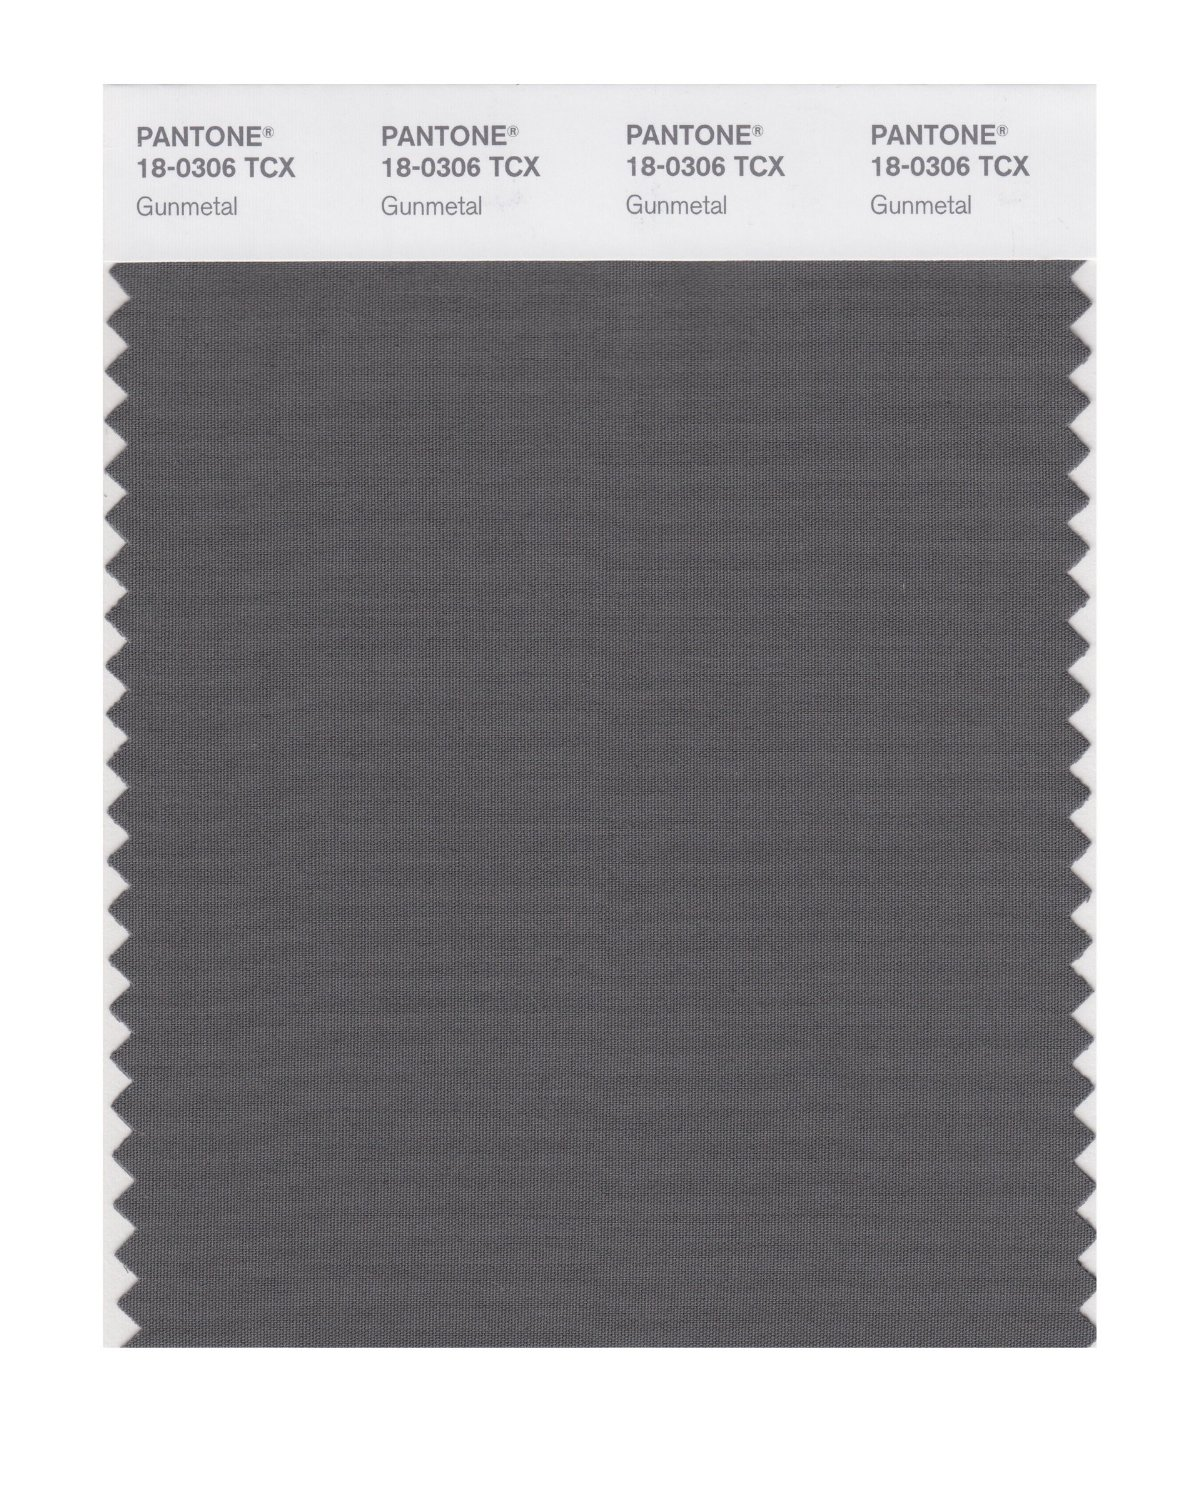 Pantone Smart Swatch 18-0306 Gunmetal